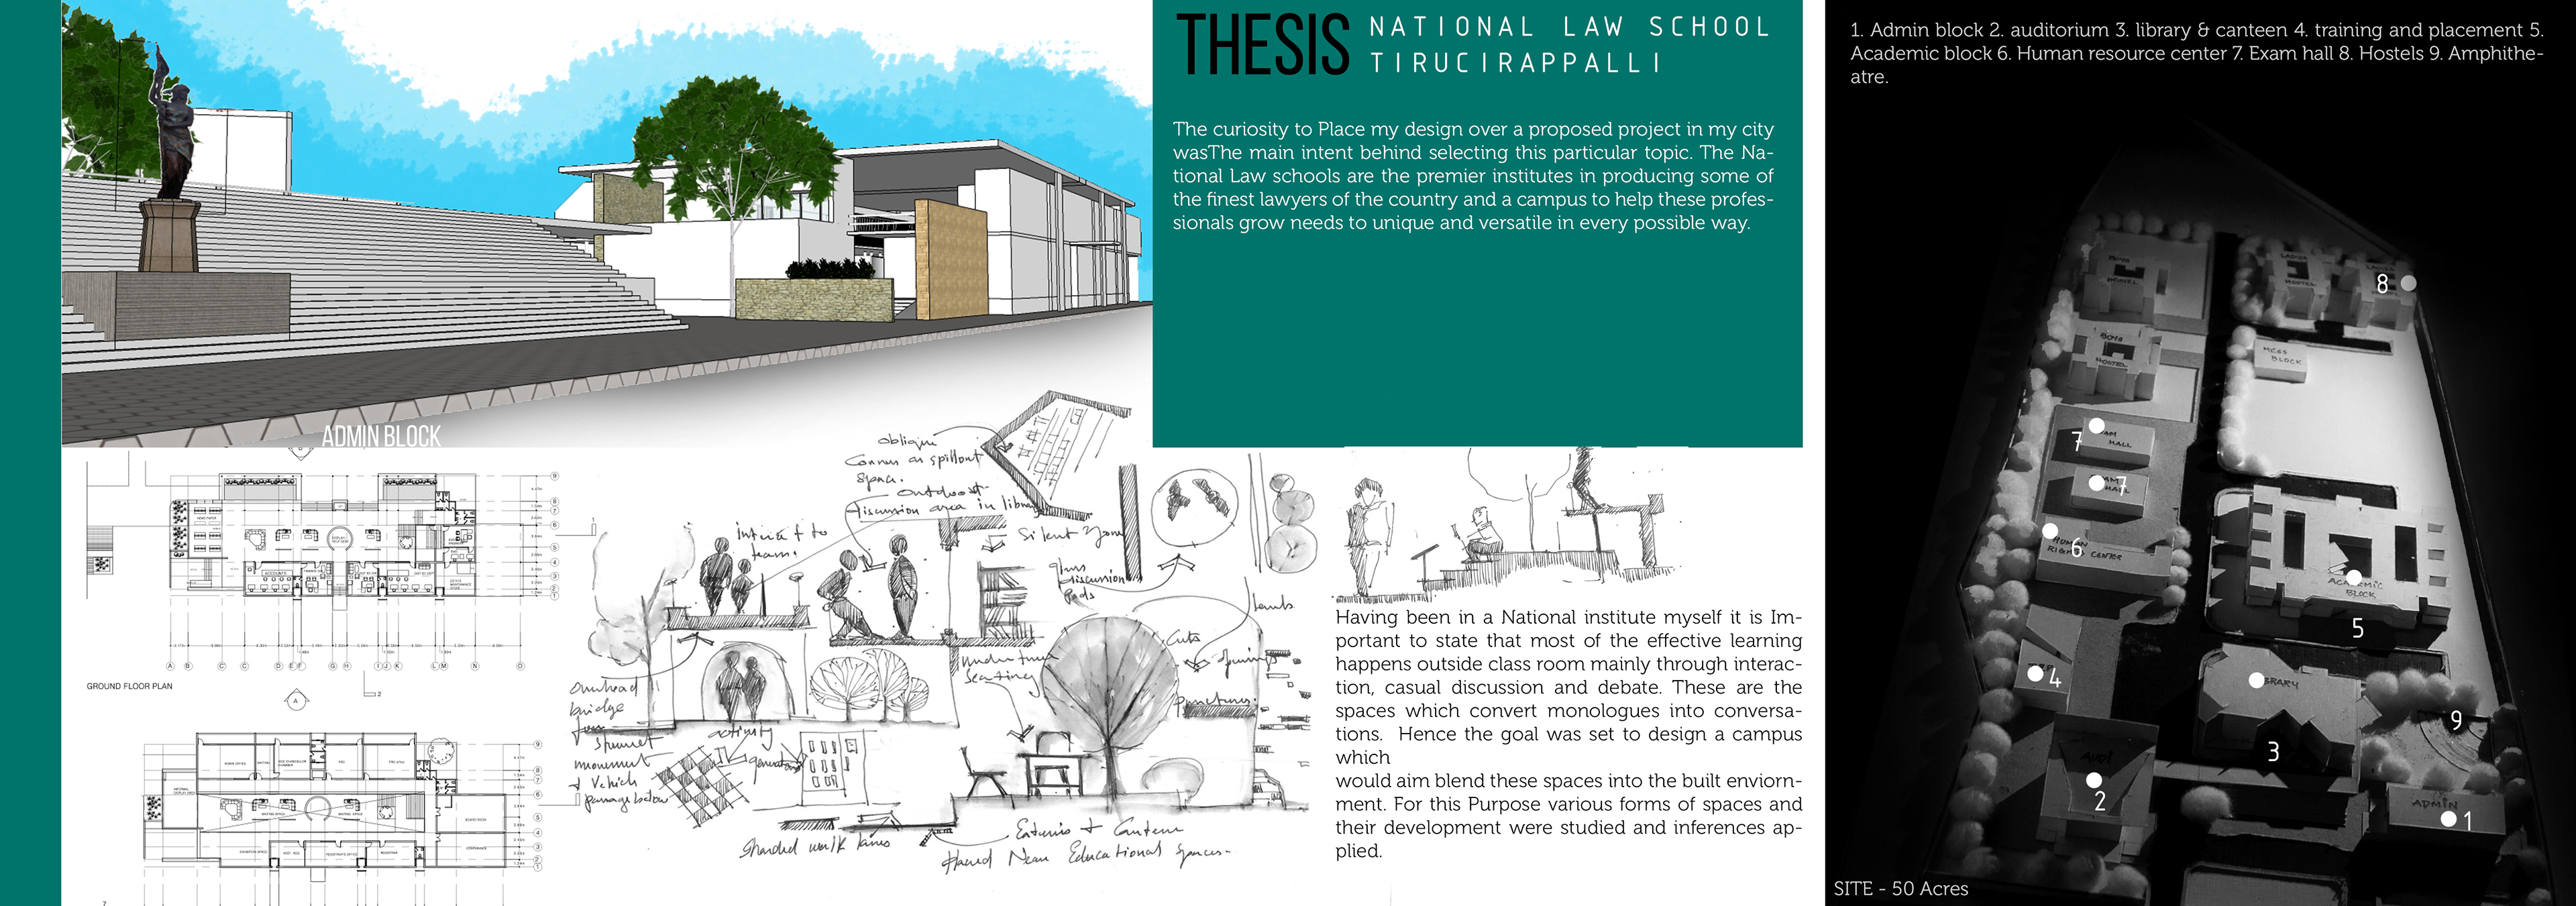 architectural thesis project What are the architectural thesis topics related to social issues in difficult and huge project for your thesis unless you want to.